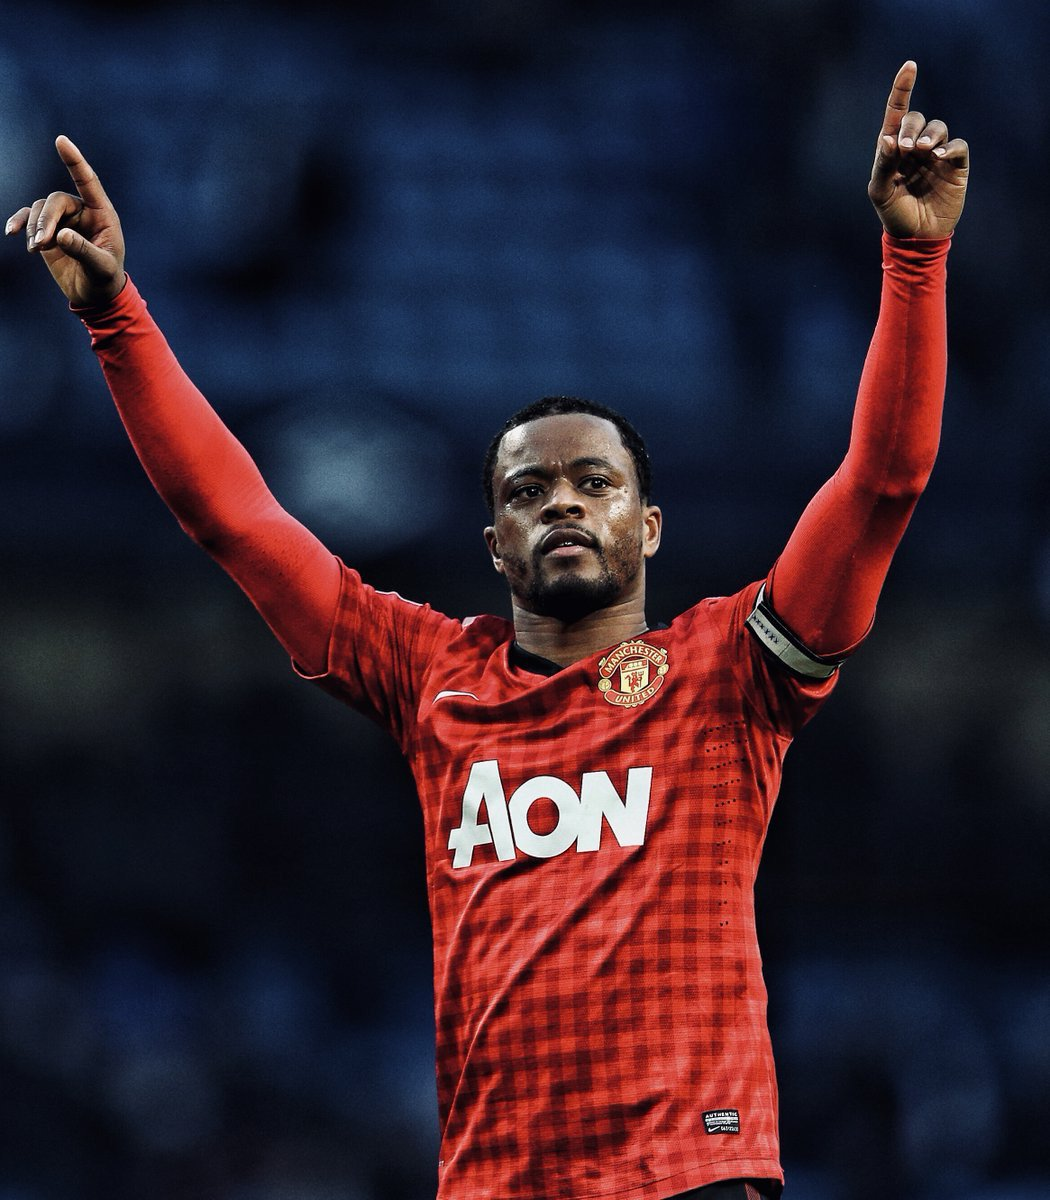 We wan wish Patrice Evra Happy Birthday, e don turn 38!